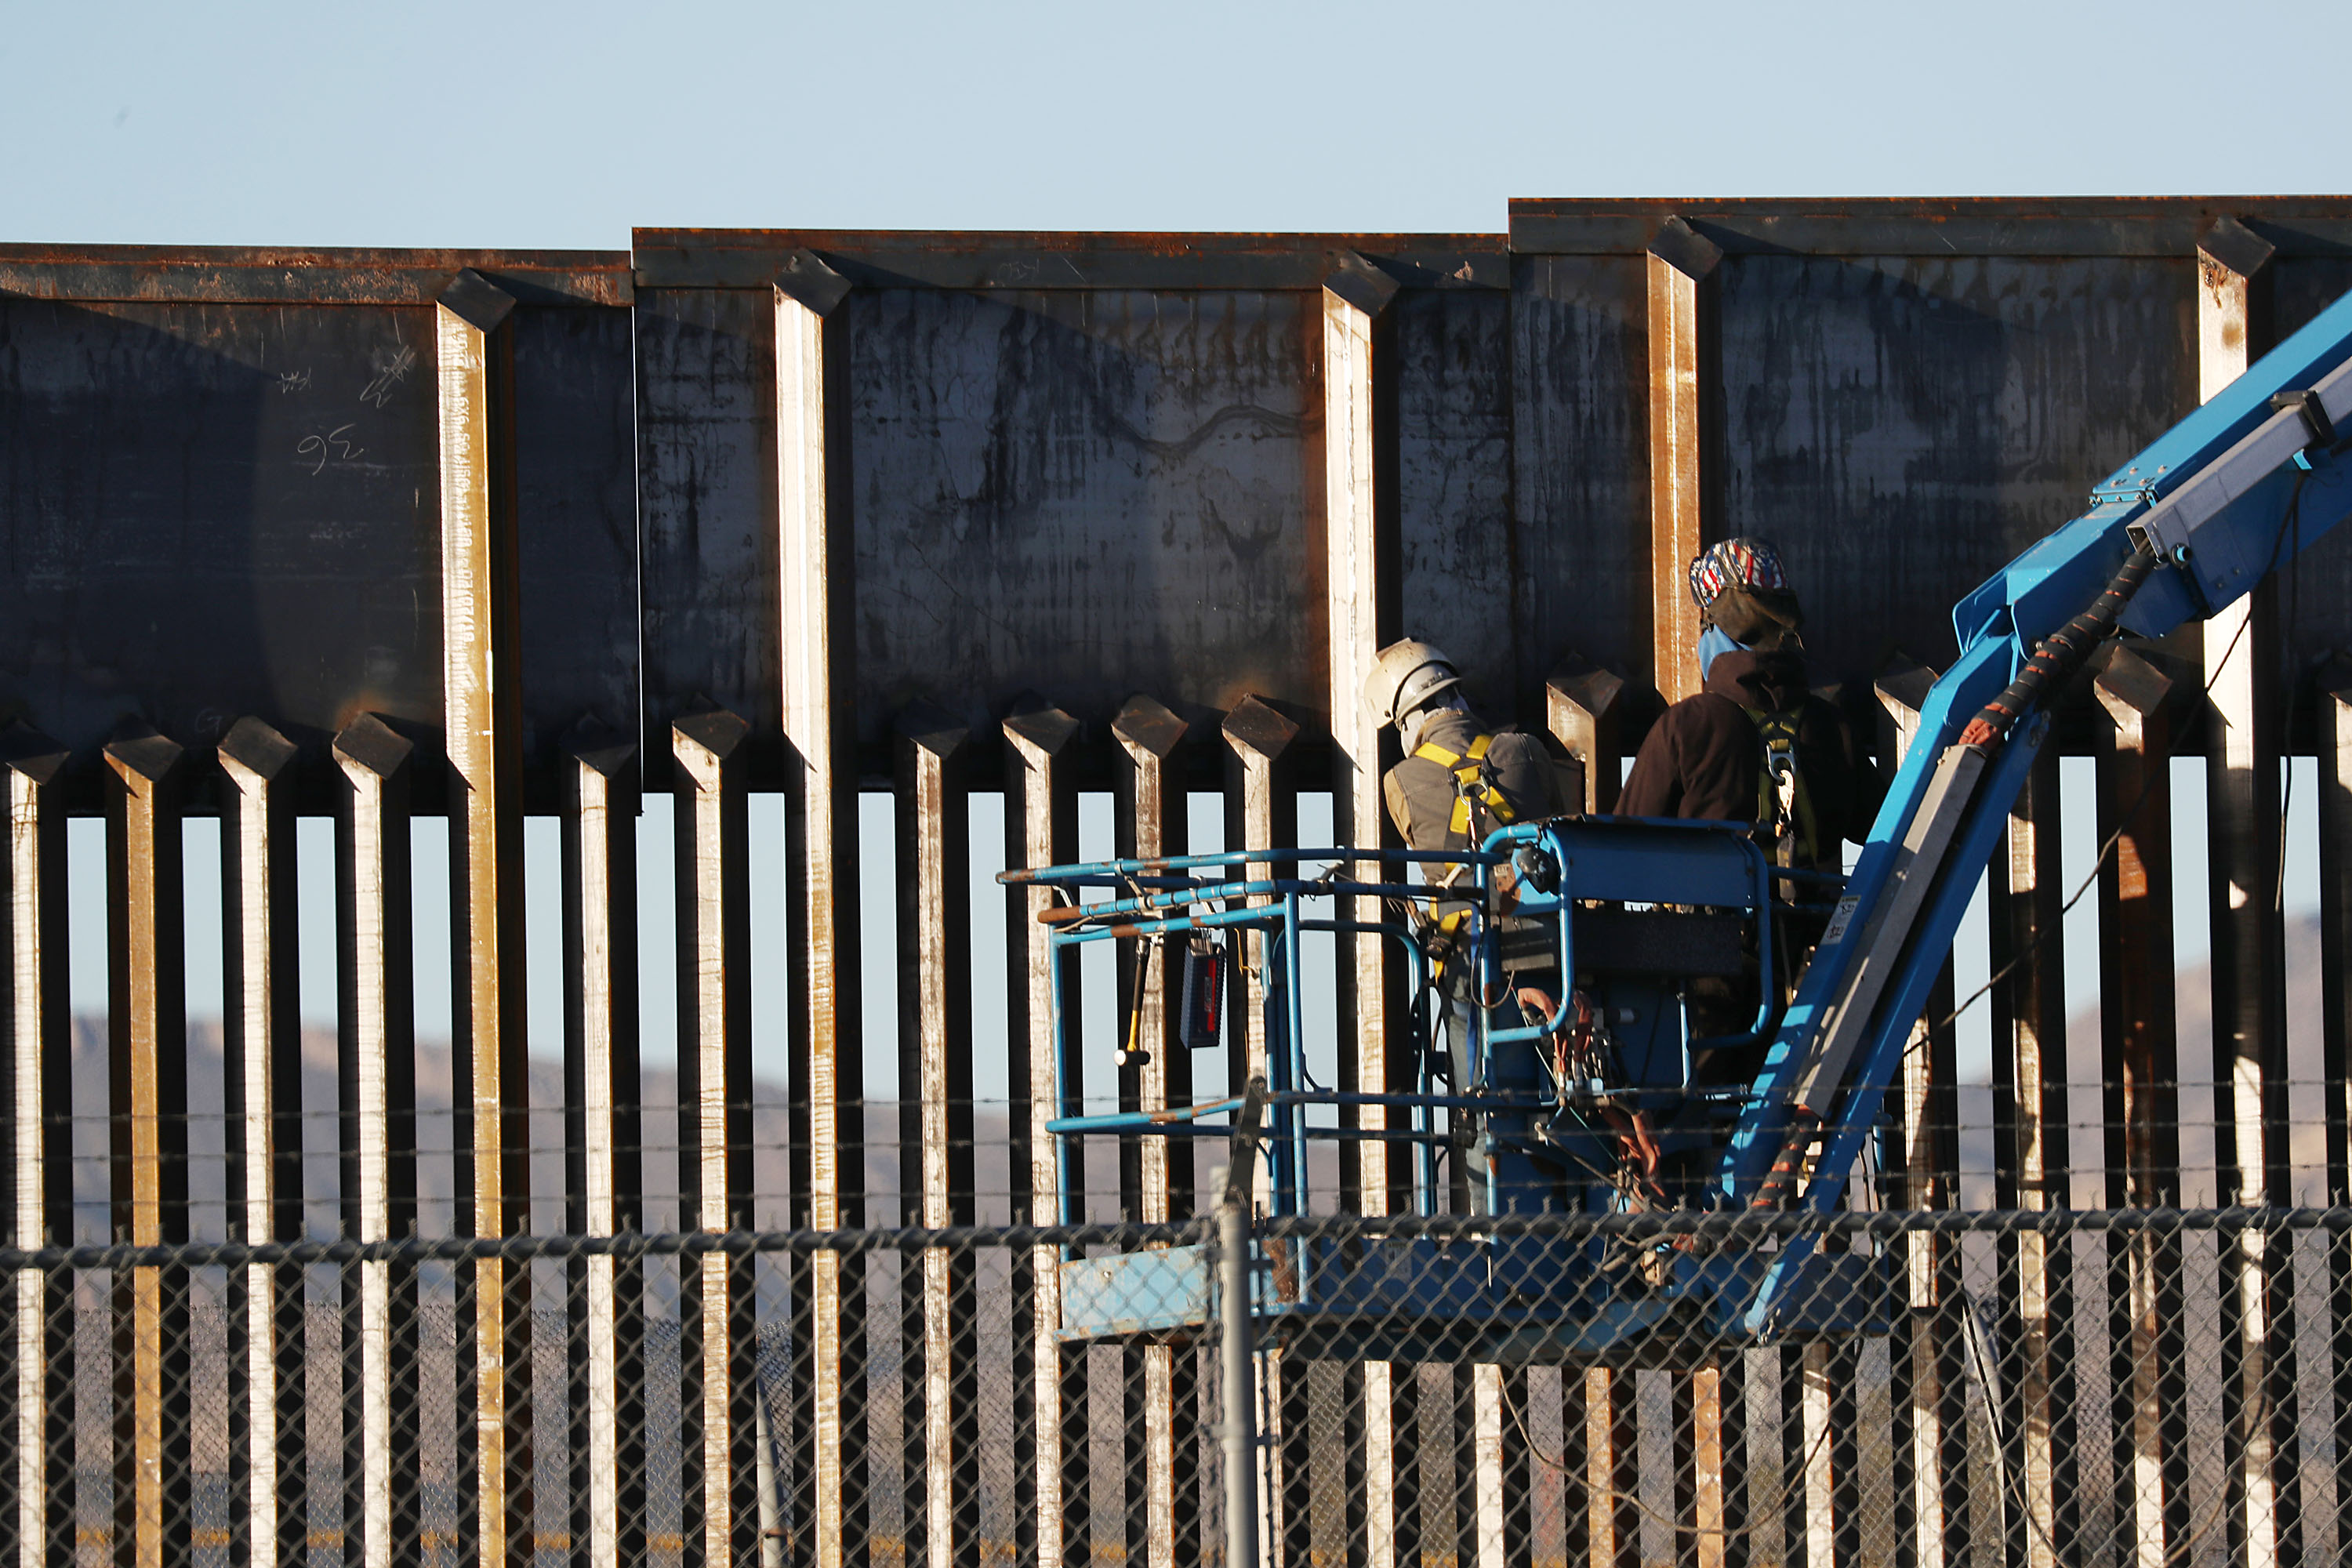 People work on the U.S./ Mexican border wall on February 12, 2019 in El Paso, Texas.